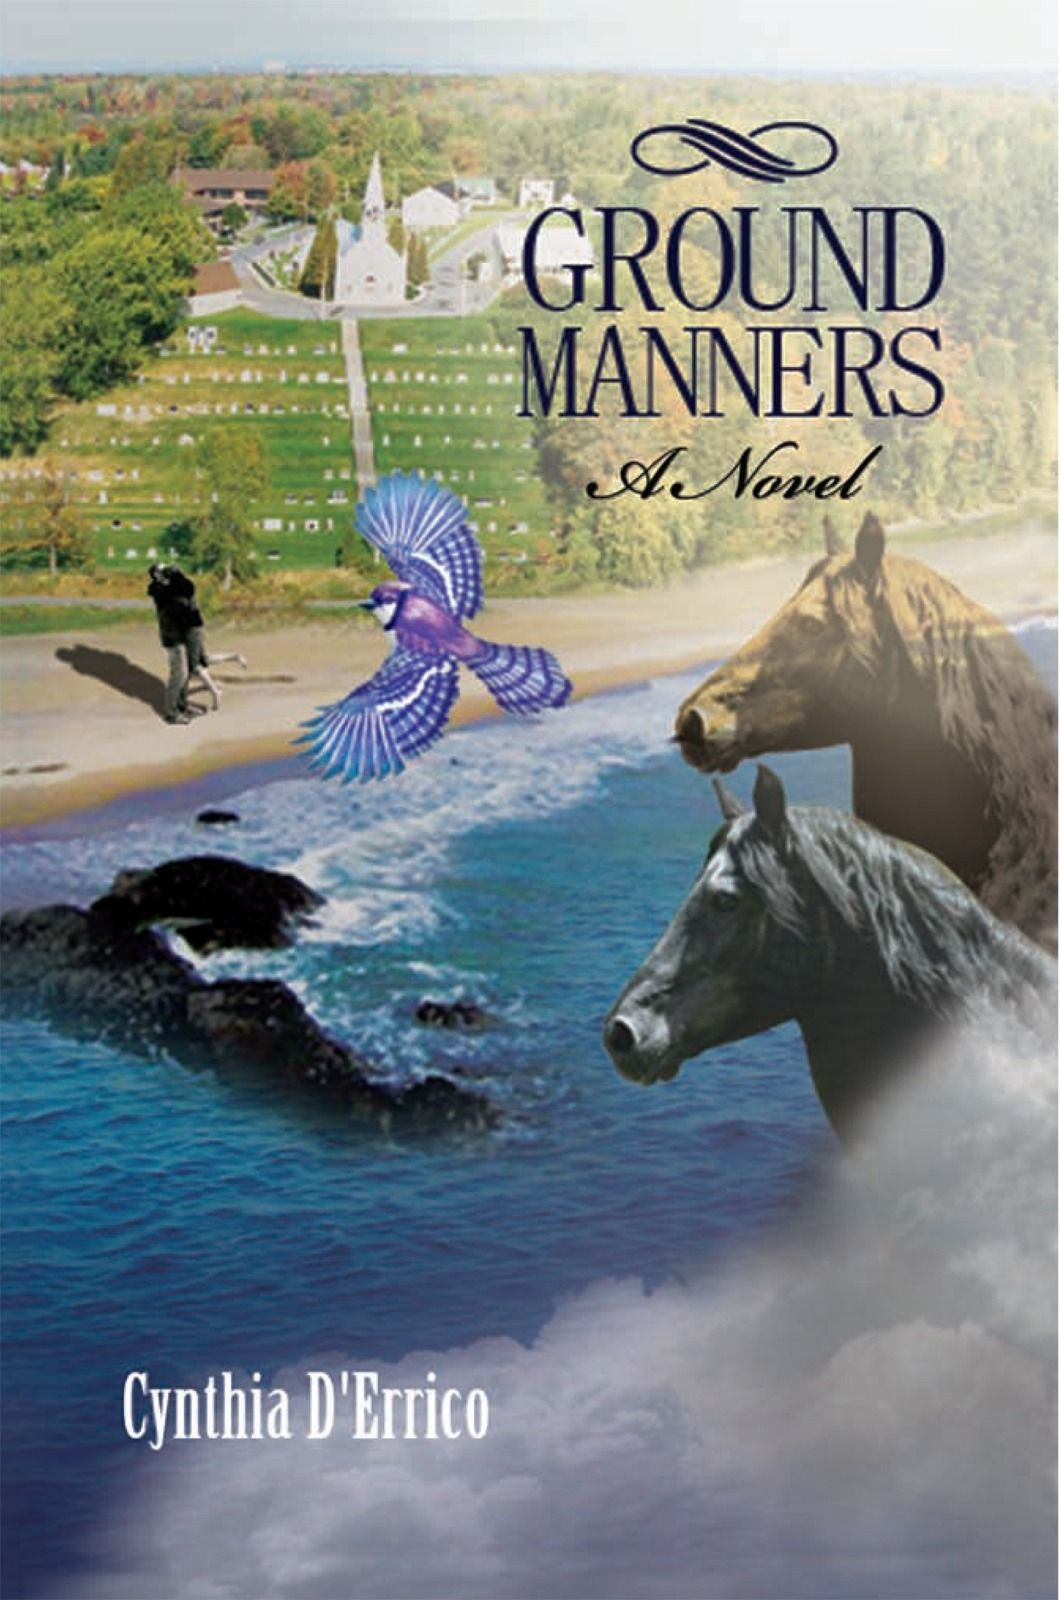 Ground Manners By: Cynthia D'Errico